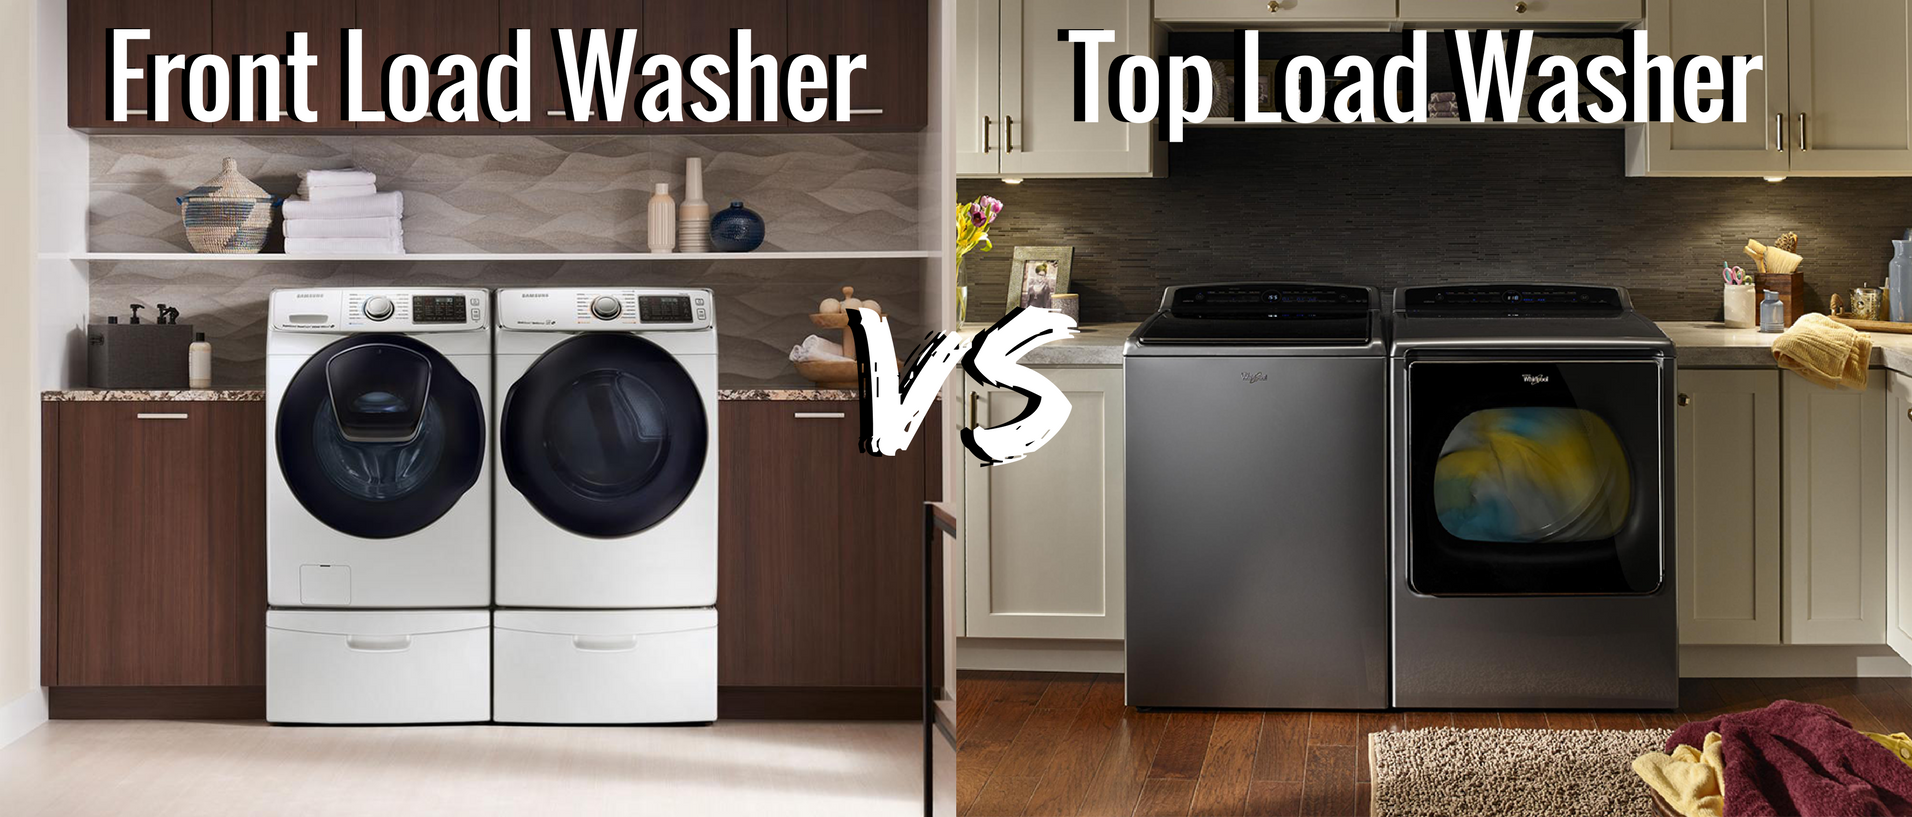 Top Load Washer Vs Front Load Washer Appliances Connection